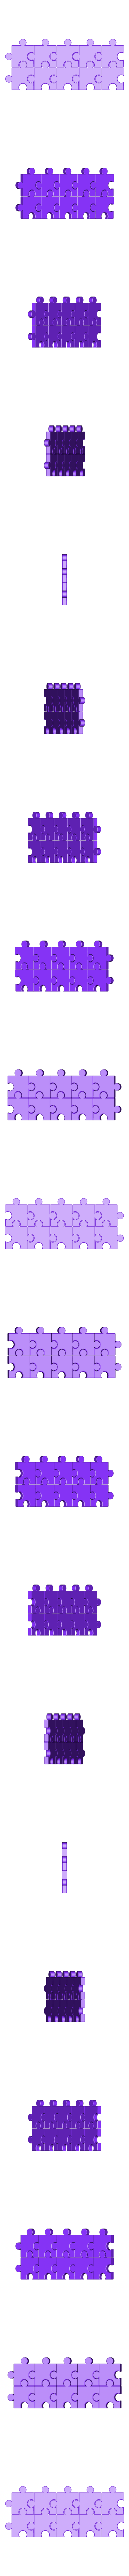 Blanks.stl Download free STL file Jigsaw Number Pieces, Puzzle, Sequences, Math Patterns • 3D printable design, LGBU